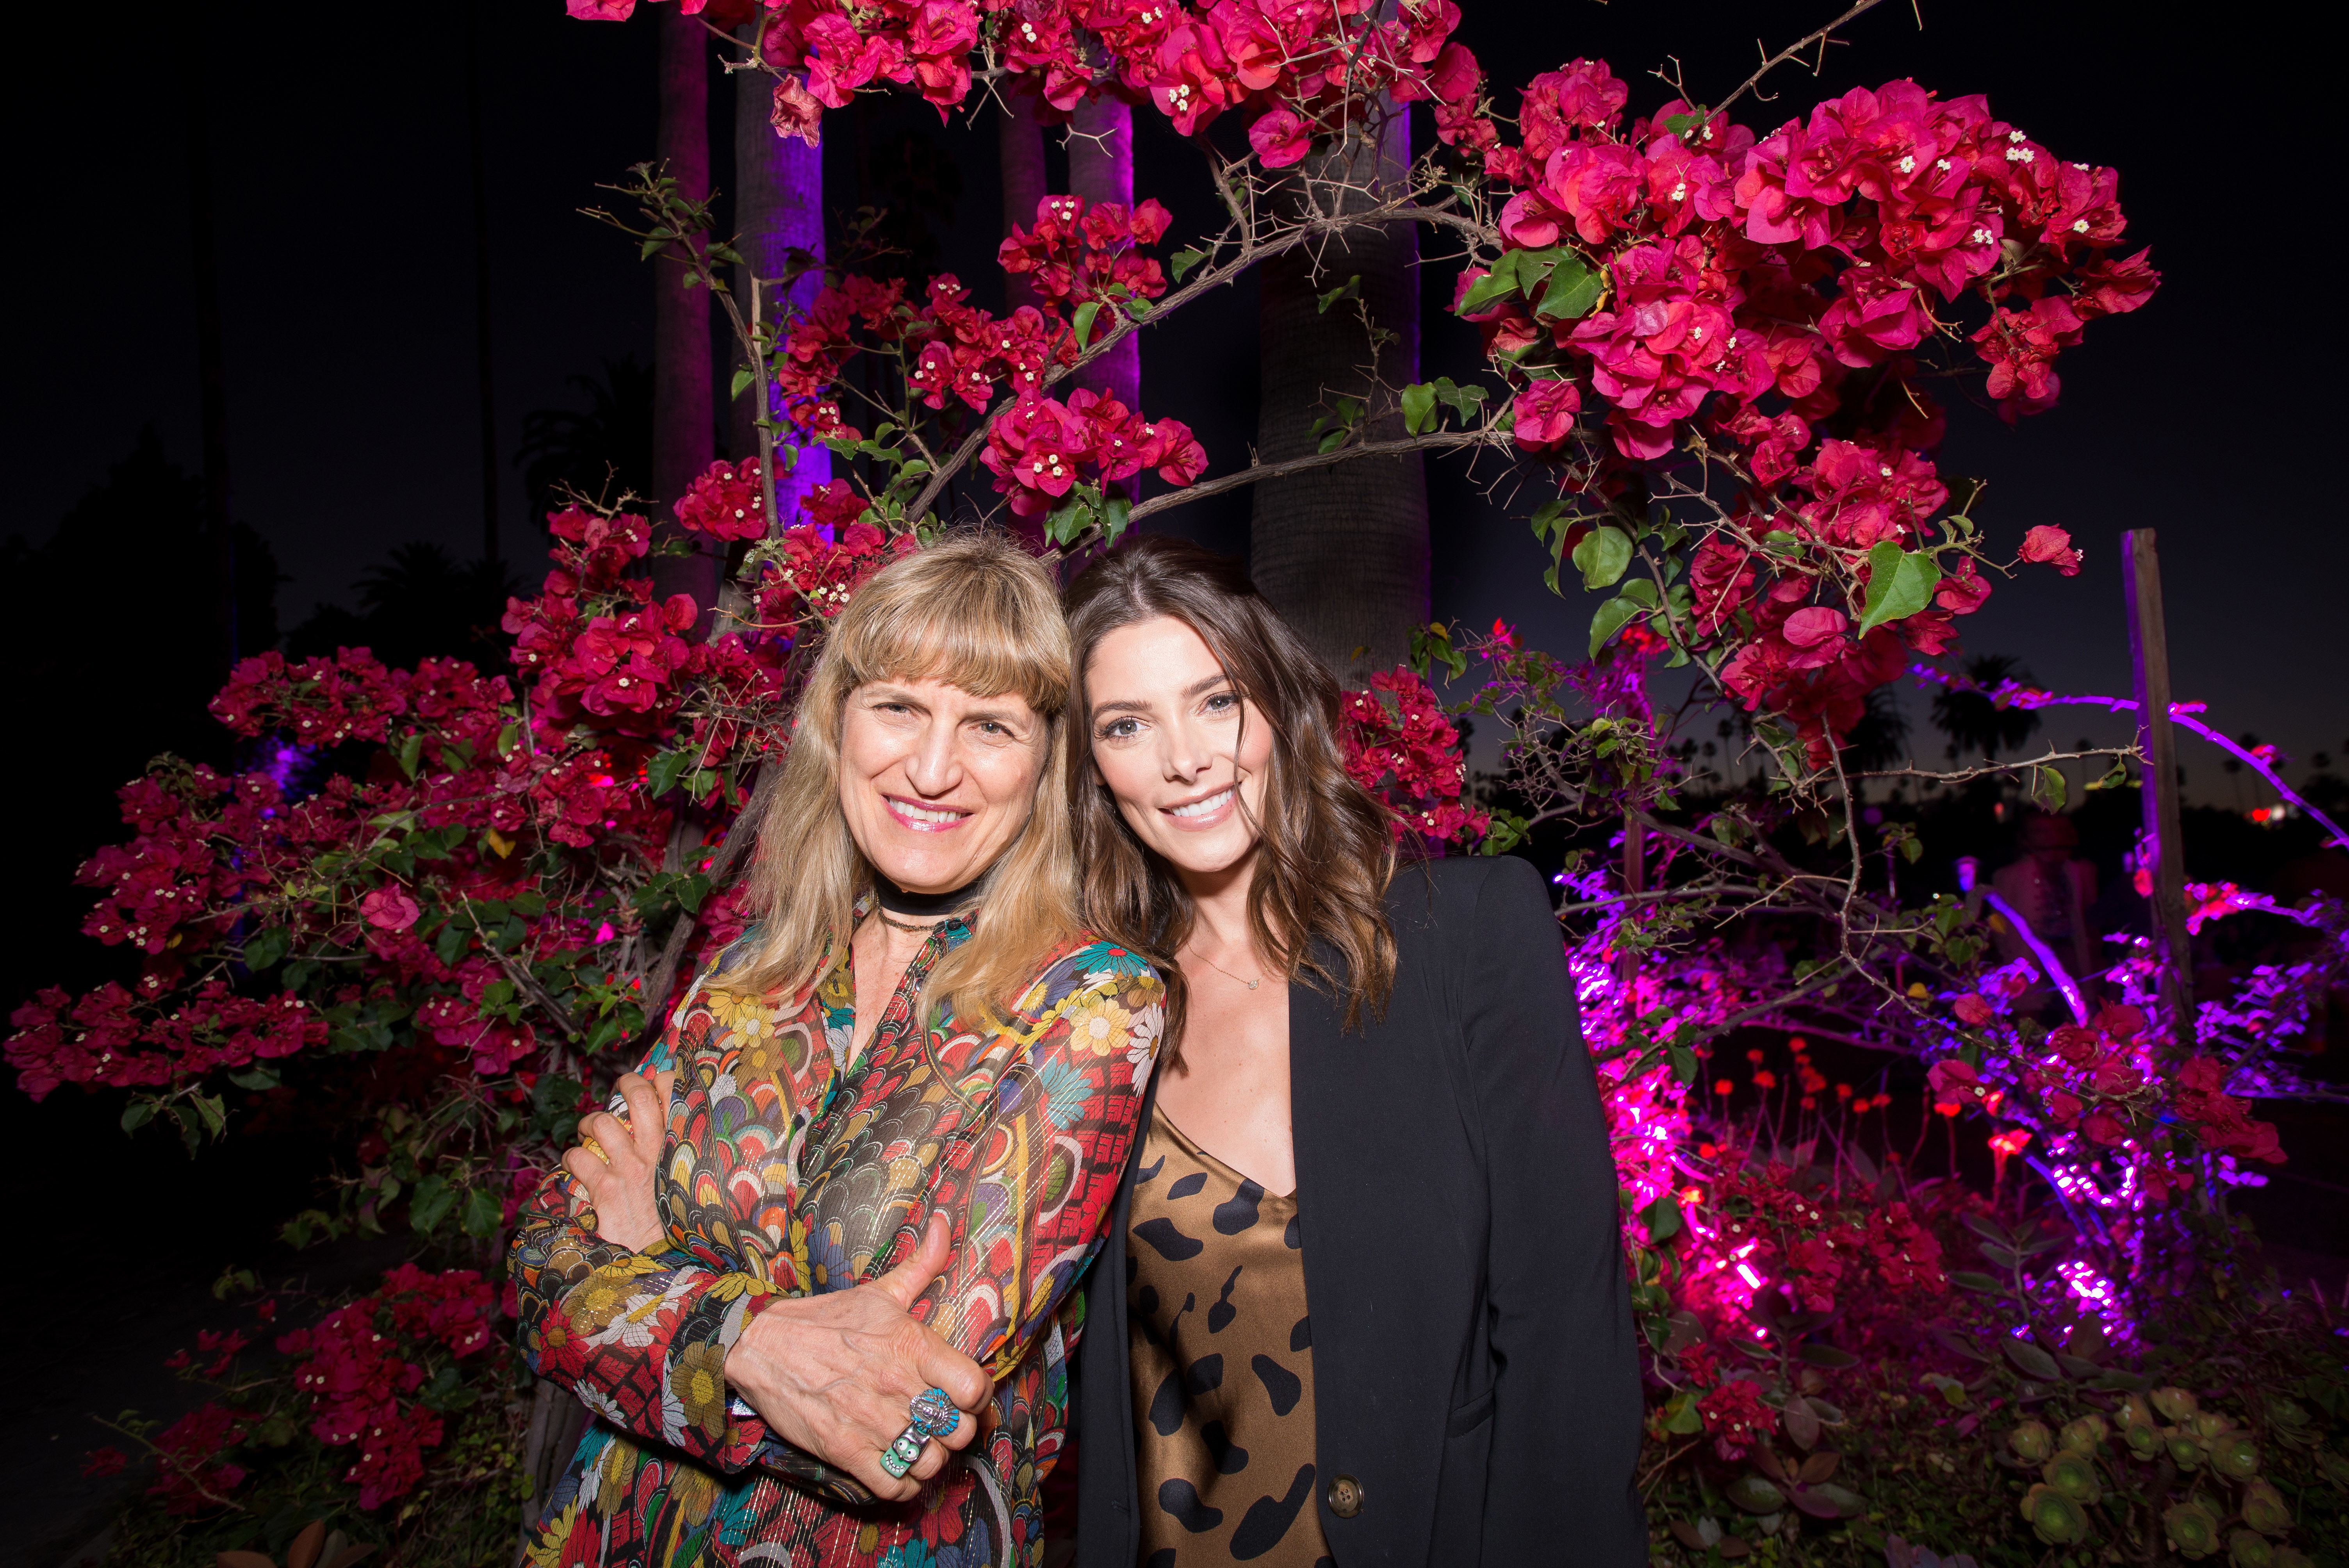 """Director Catherine Hardwicke and Ashley Greene reunite at Cinespia's screening of """"Twilight"""" at the Hollywood Forever Cemetery presented by Amazon Studios & Amazon Prime Video on July 27, 2019."""